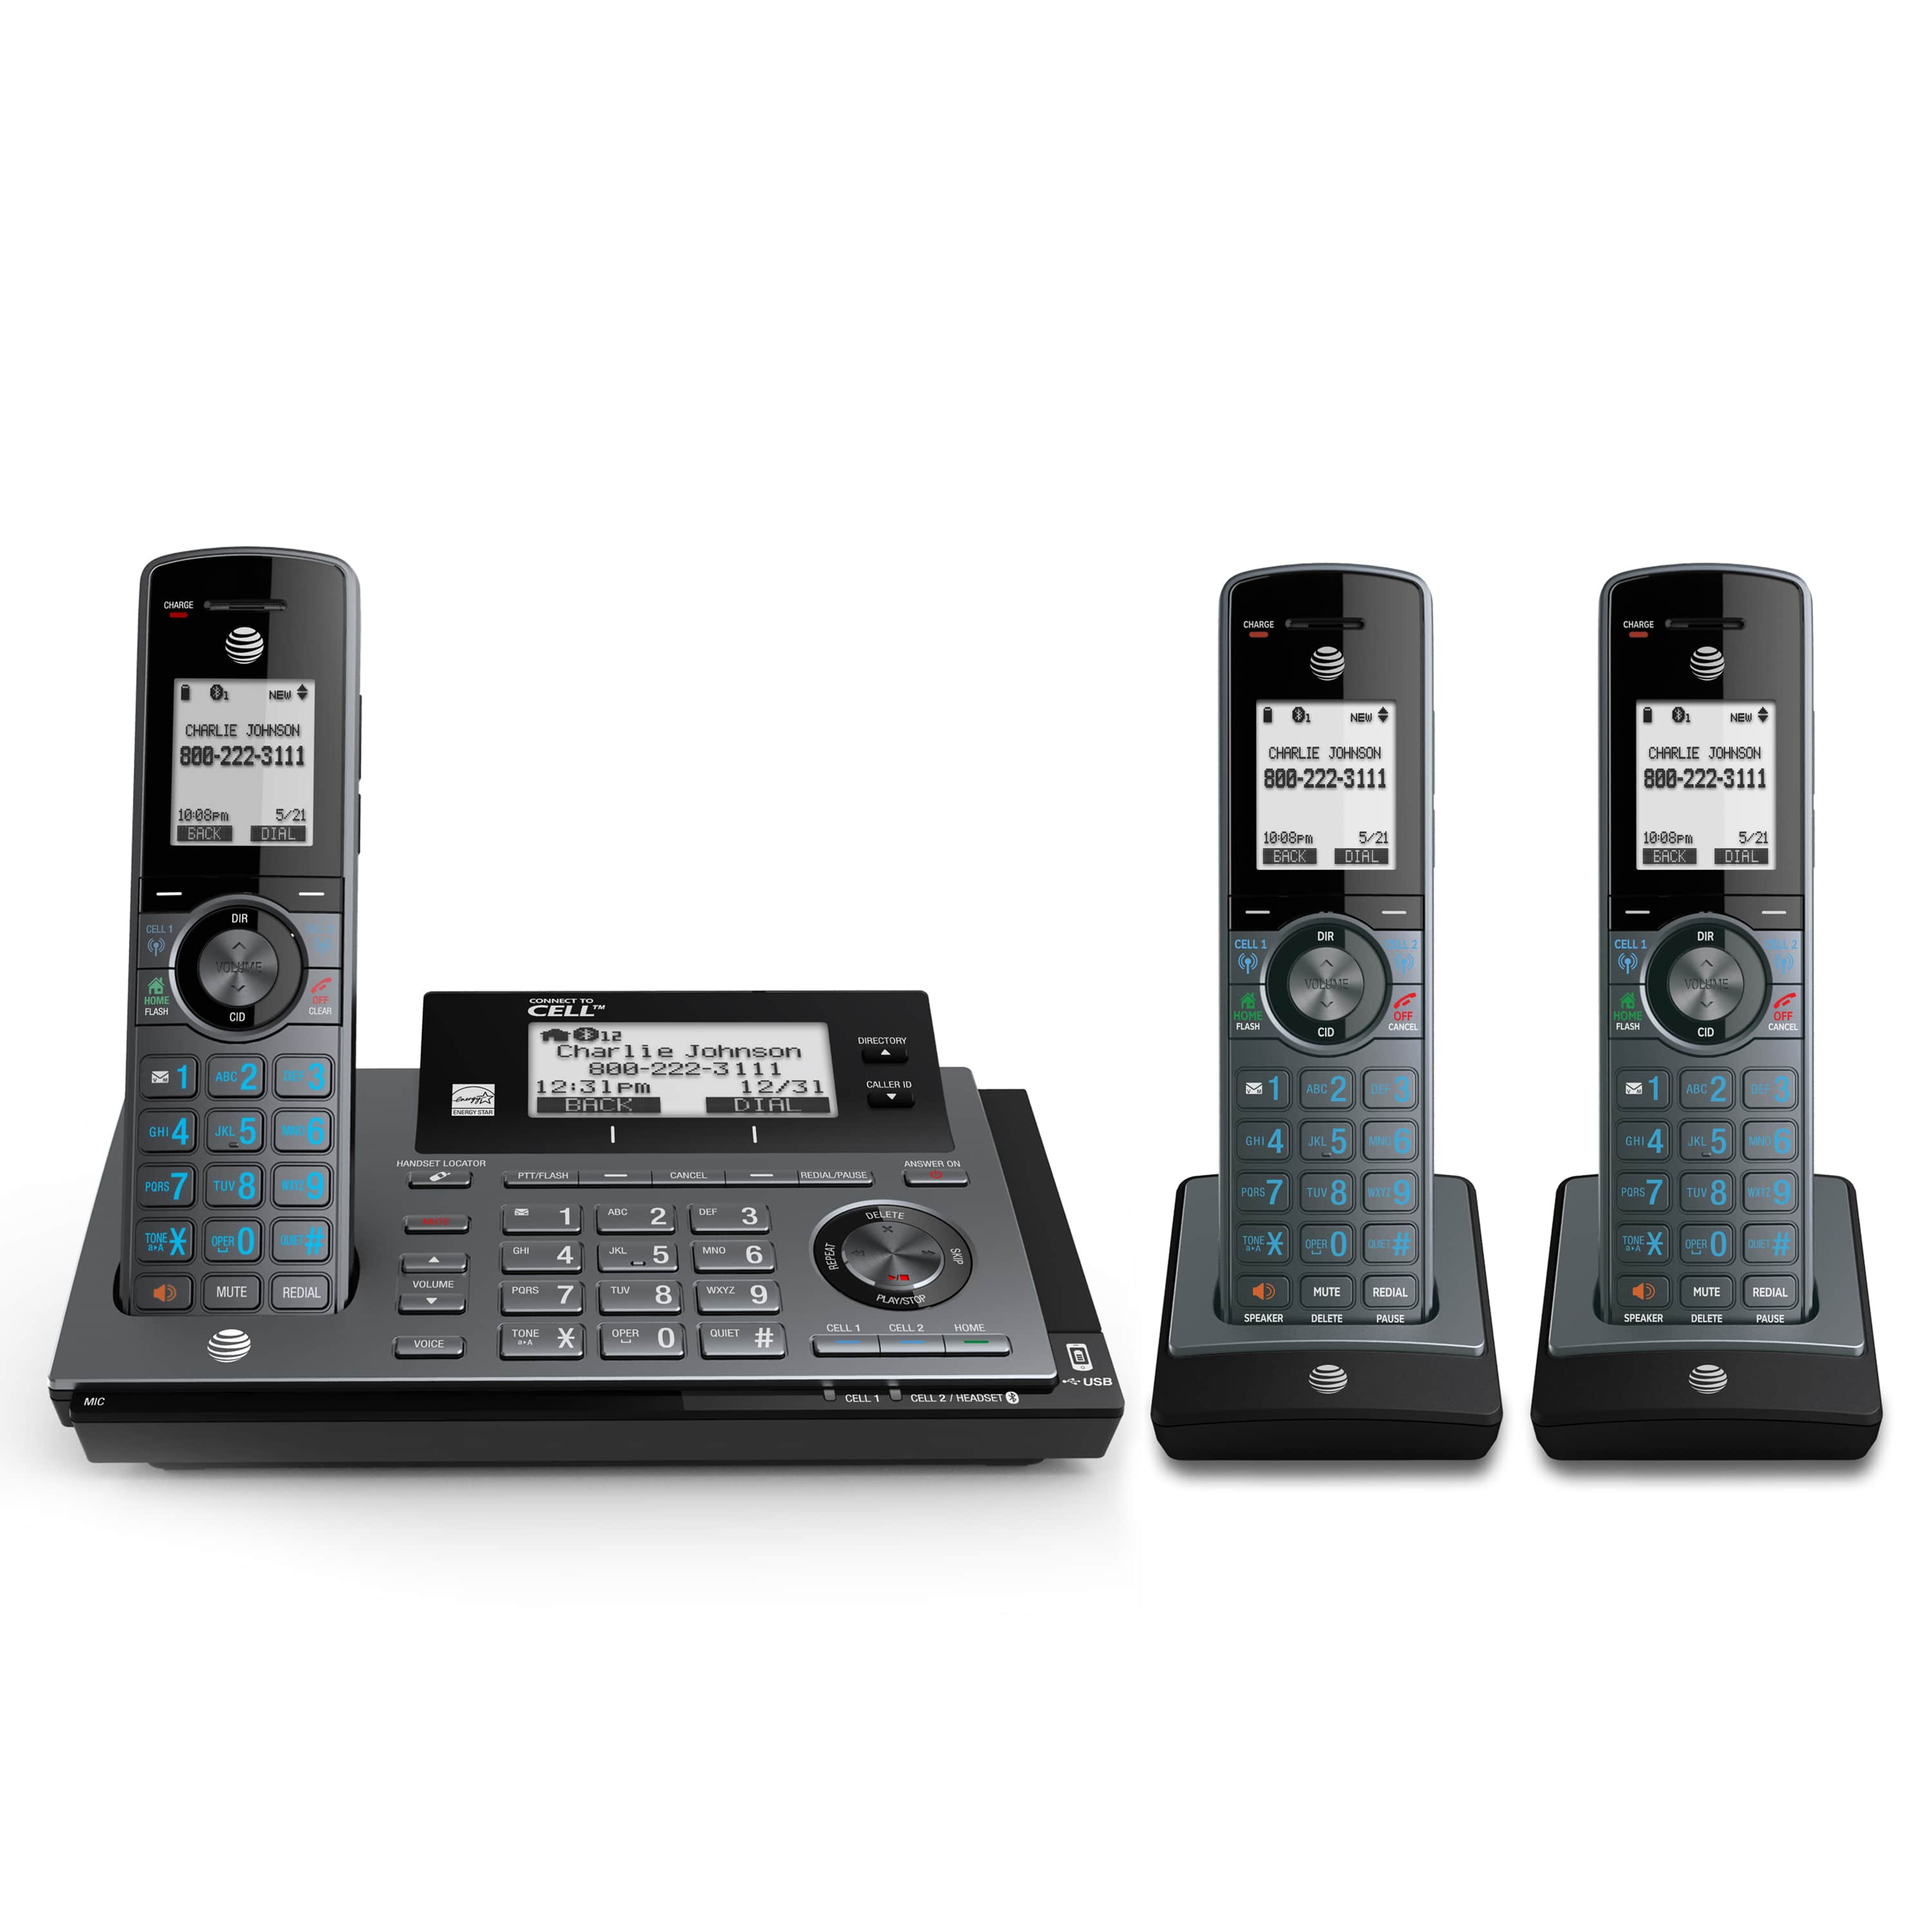 bluetooth connect to cell cordless phones at t telephone store rh telephones att com Panasonic Cordless Phones Panasonic Cordless Phones DECT 6.0